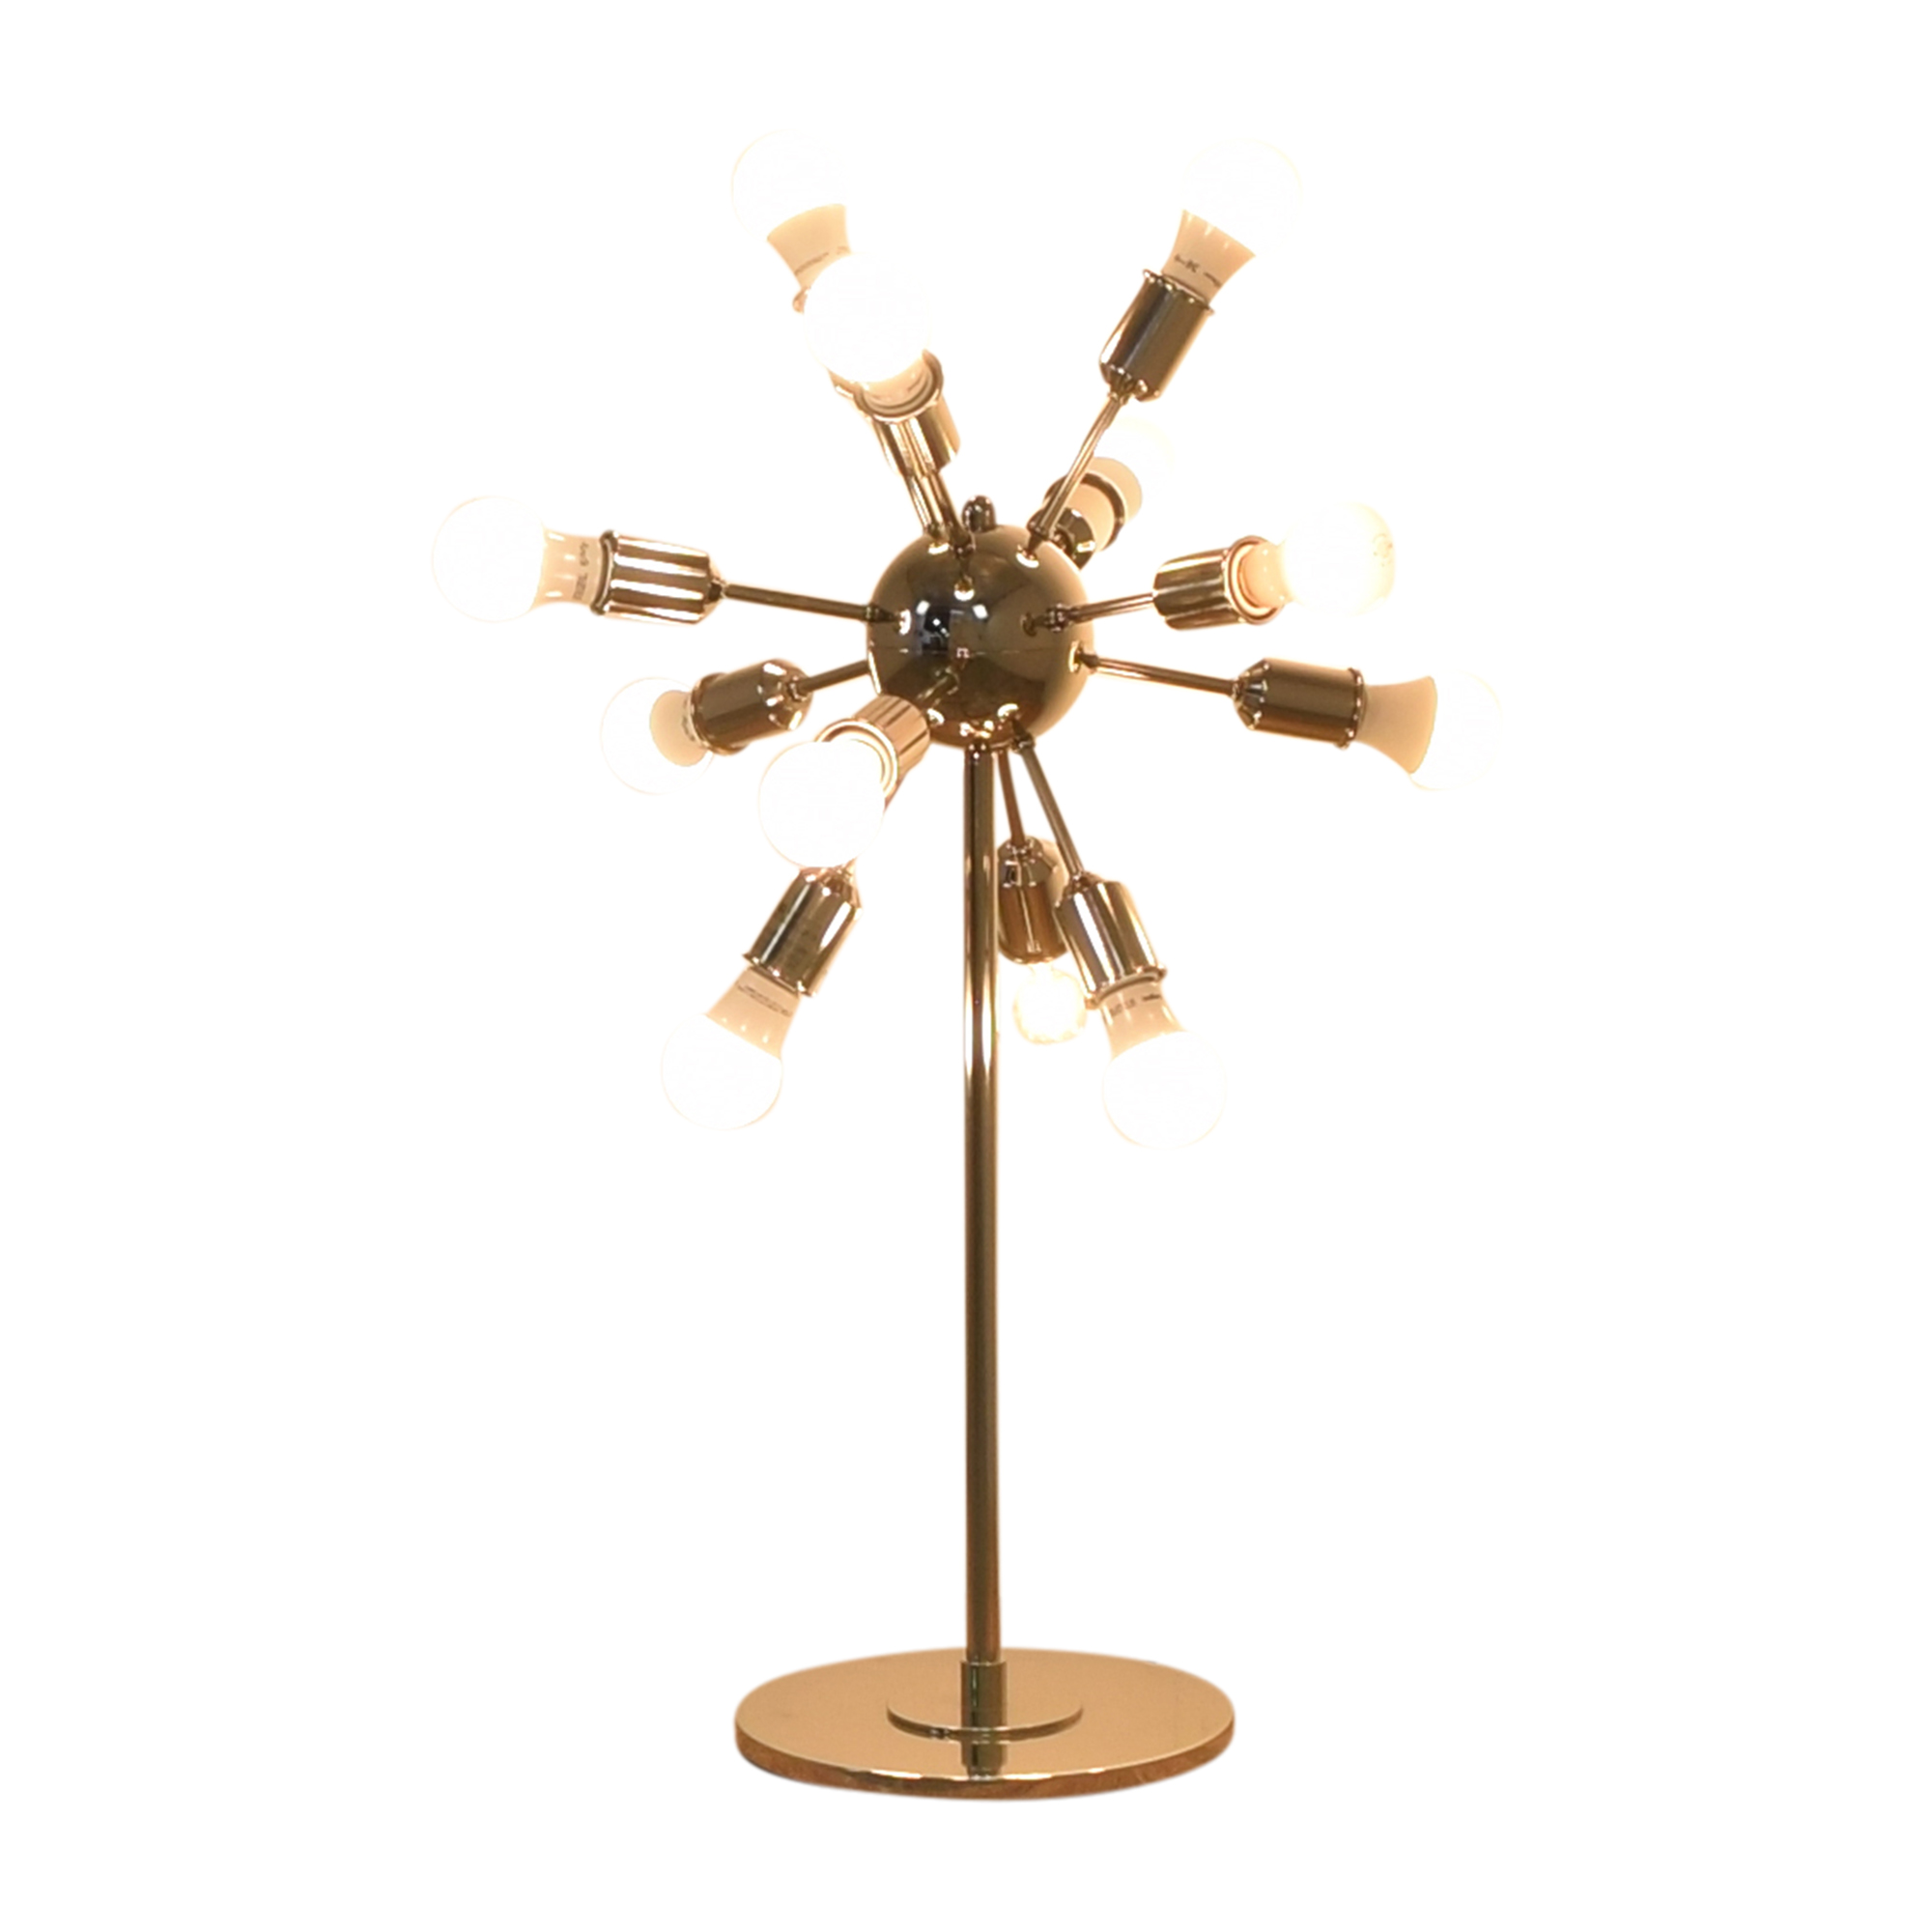 Restoration Hardware Restoration Hardware Sputnik Table Lamp second hand